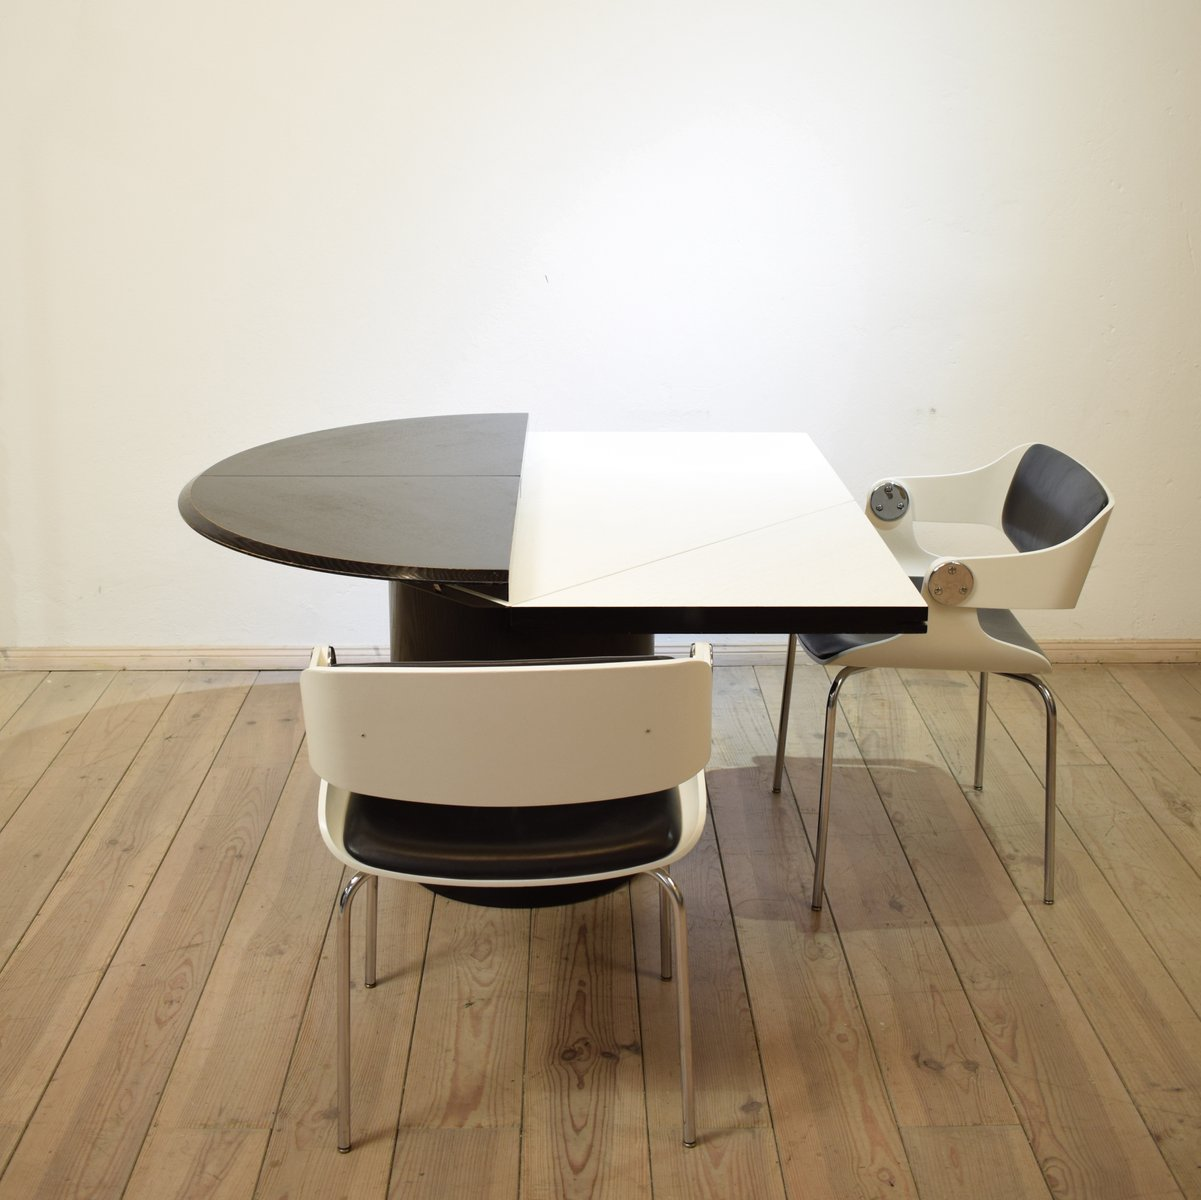 quadrondo round dining table by erwin nagel for rosenthal 1980s for